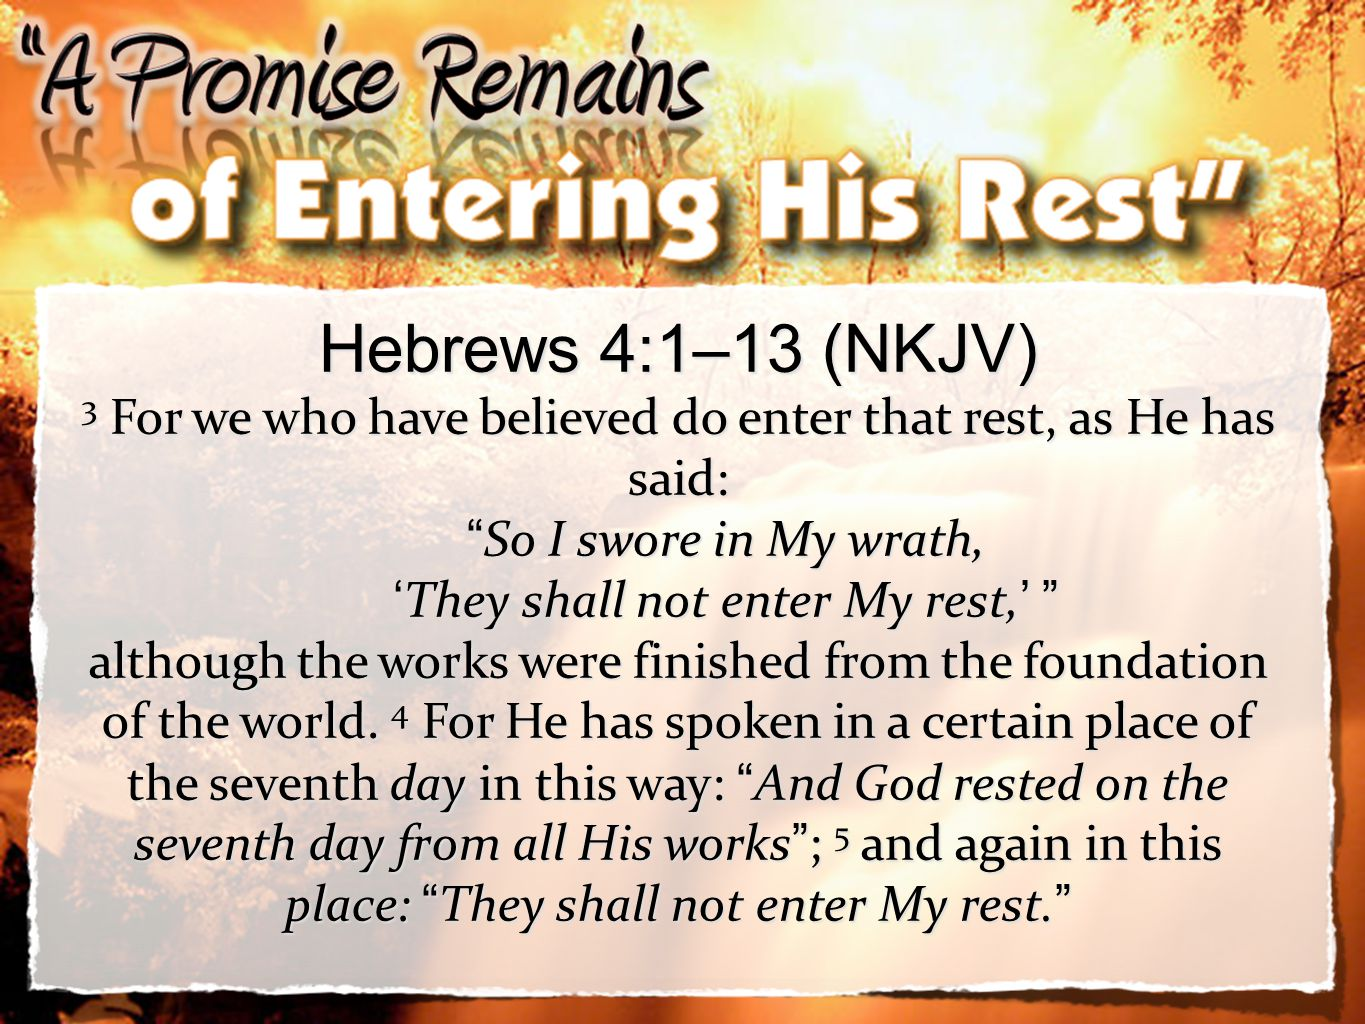 Hebrews 4:1–13 (NKJV) 3 For we who have believed do enter that rest, as He has said: So I swore in My wrath,